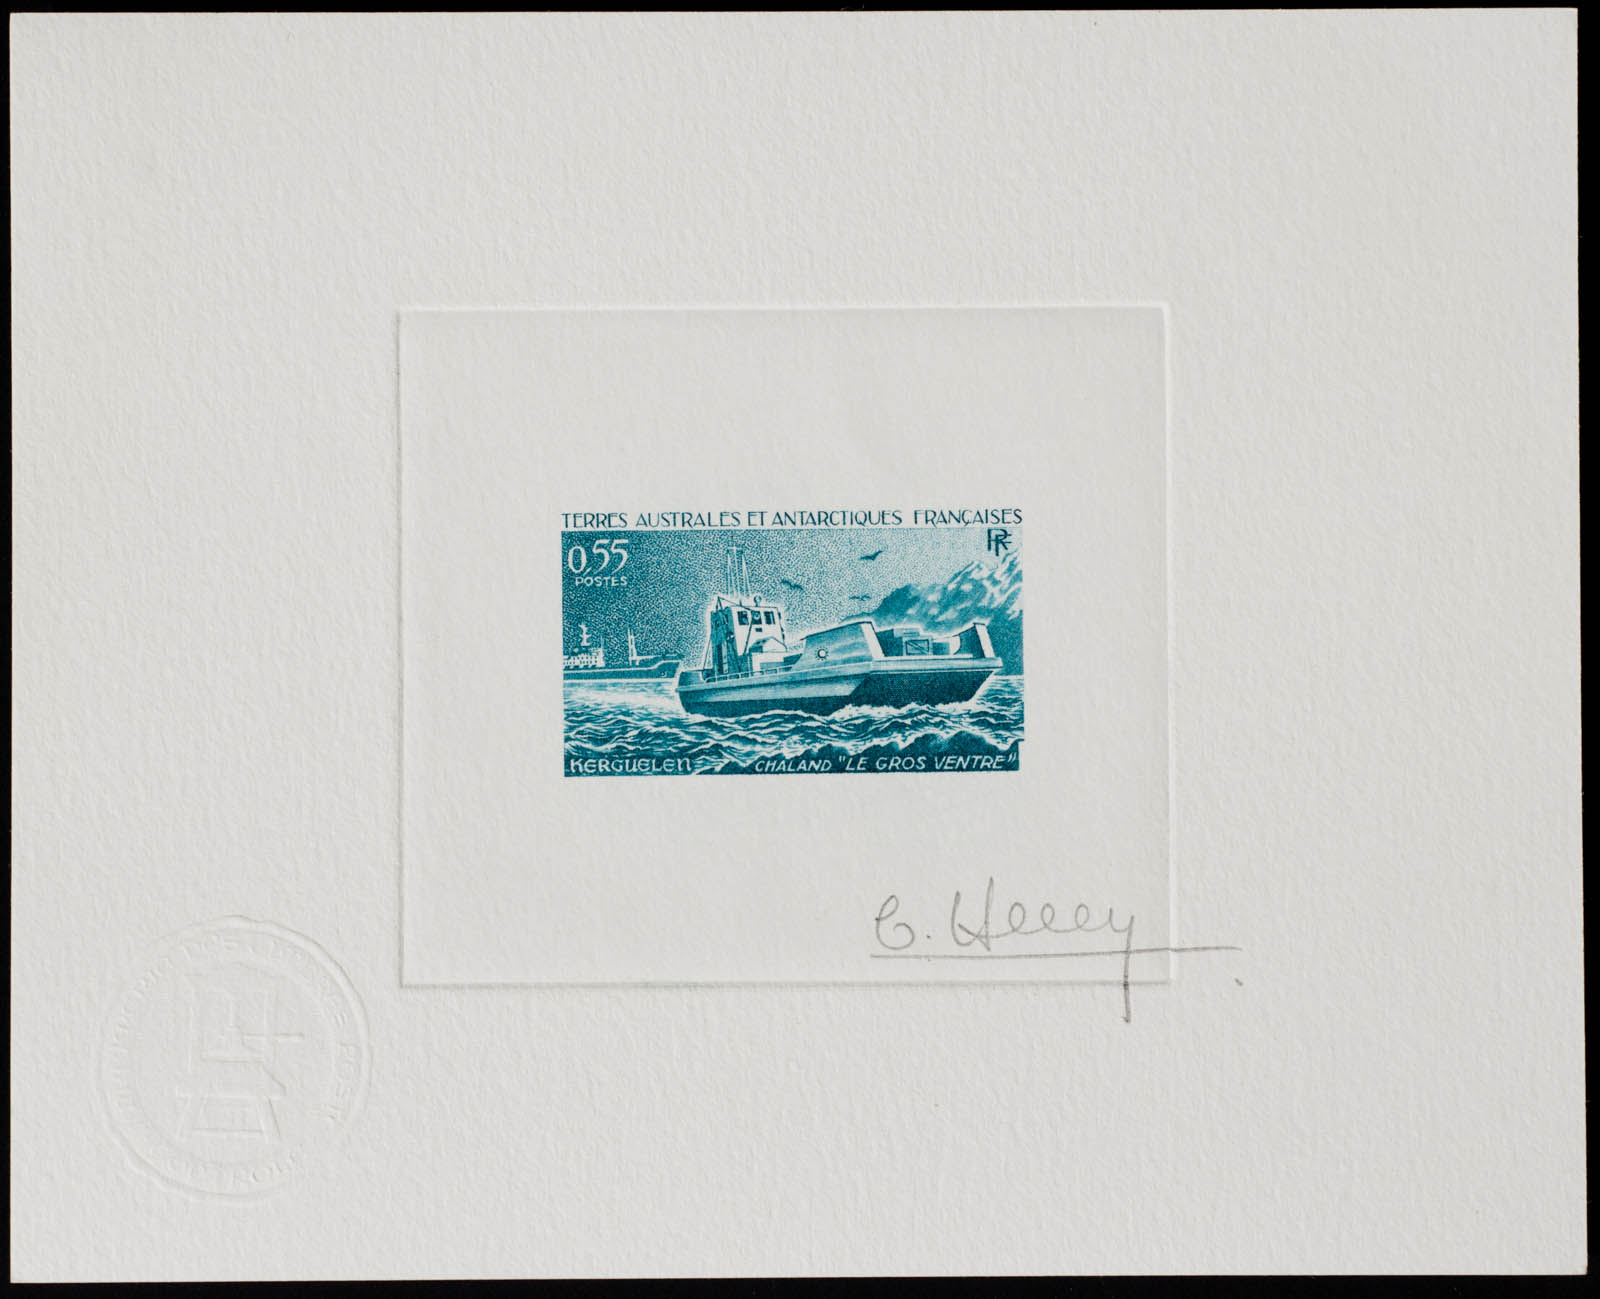 French Antarctic Le Gros Ventre Stamp Artist's Proof